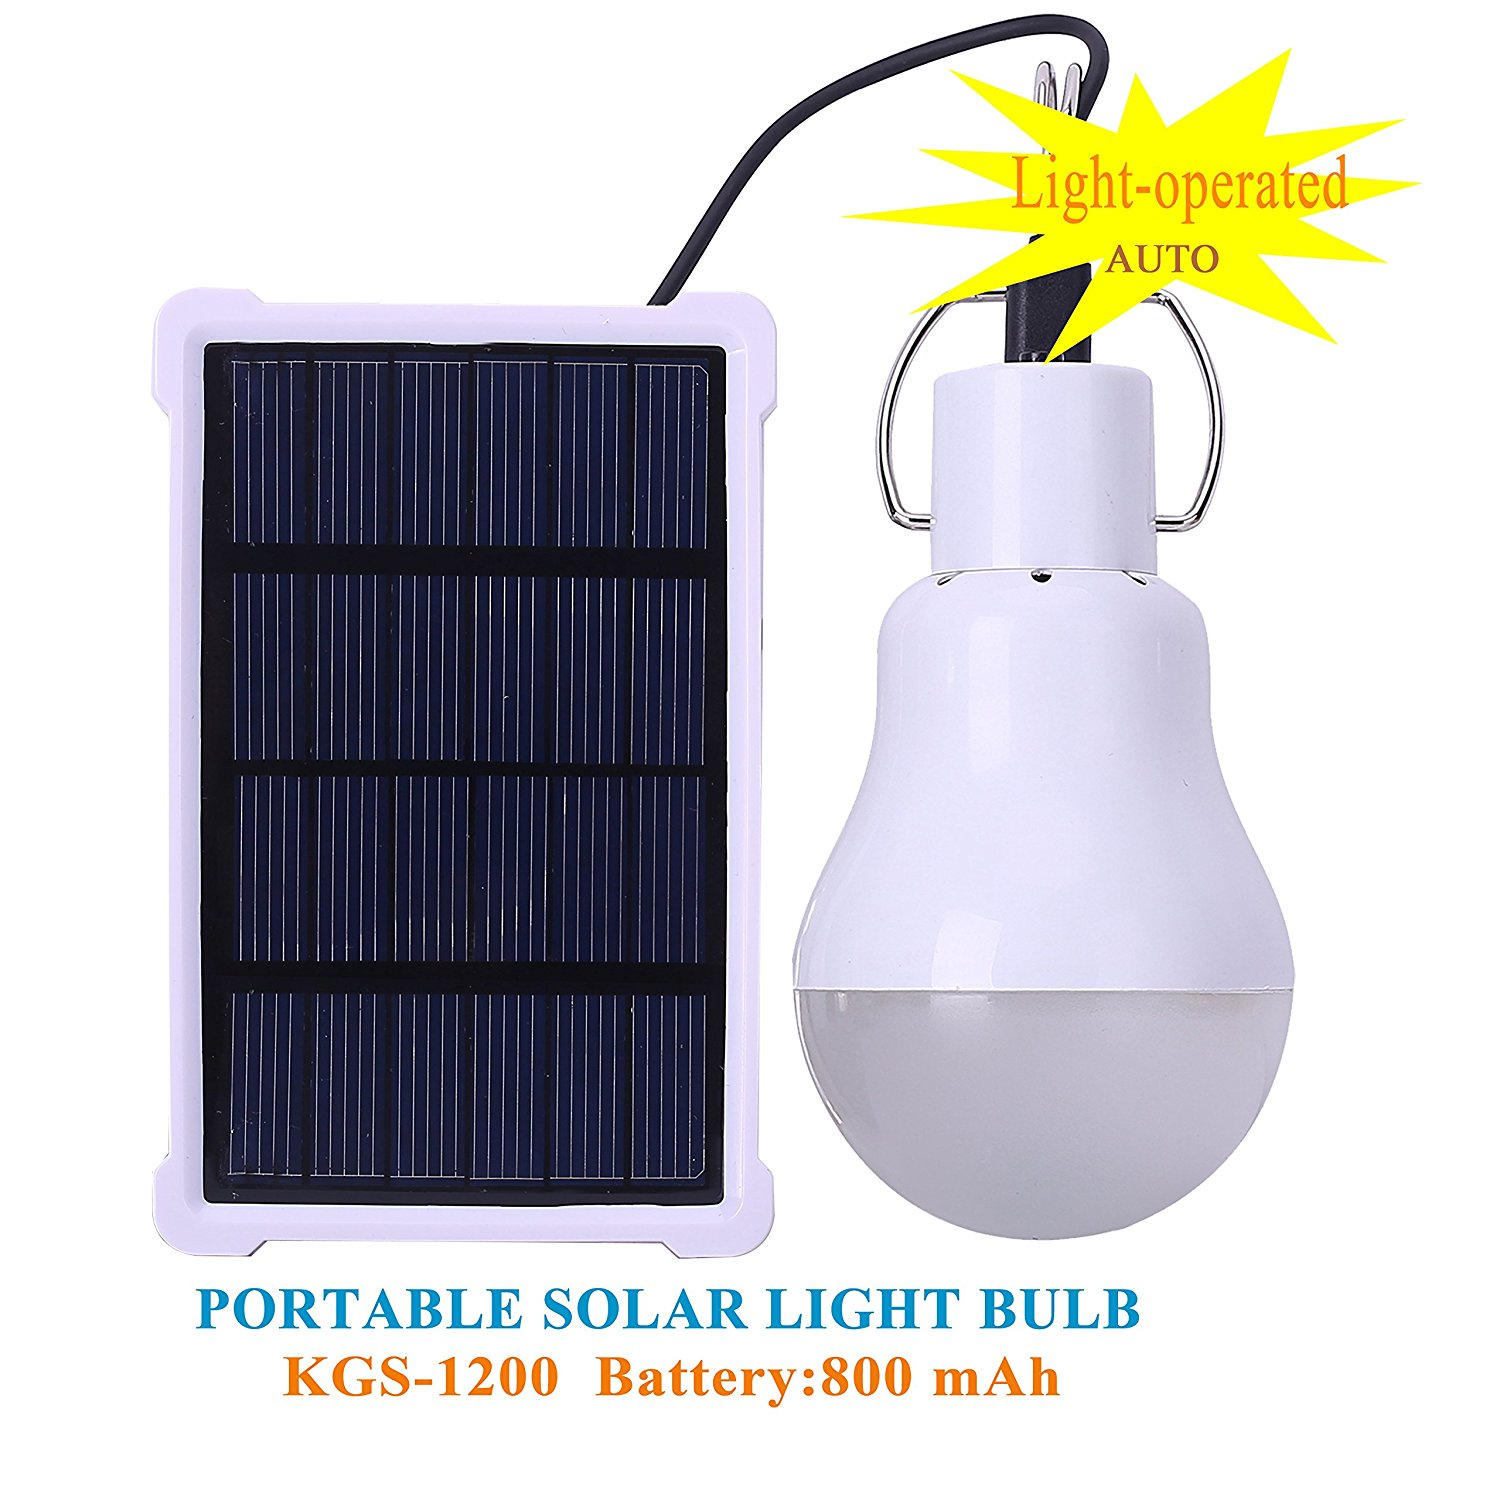 Bol Solar Lamp Portable Led Light Bulb Panel Ed Rechargeable Lights